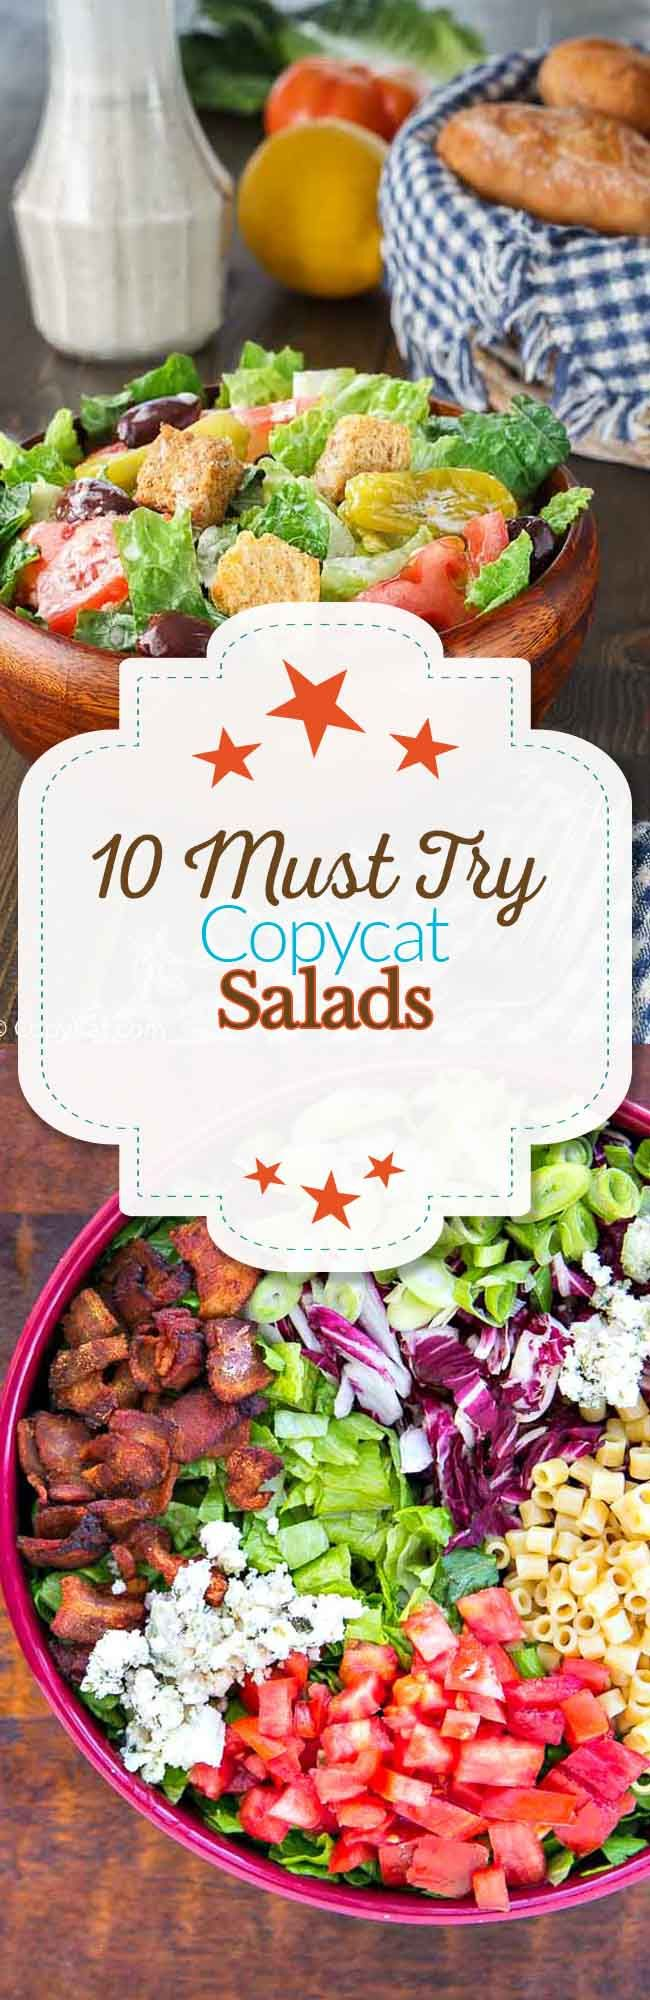 "<p>This copycat Portillos salad has everything in it but the kitchen sink. Get this <a href=""http://www.thewickednoodle.com/portillos-chopped-salad/"">recipe</a>.</p>"